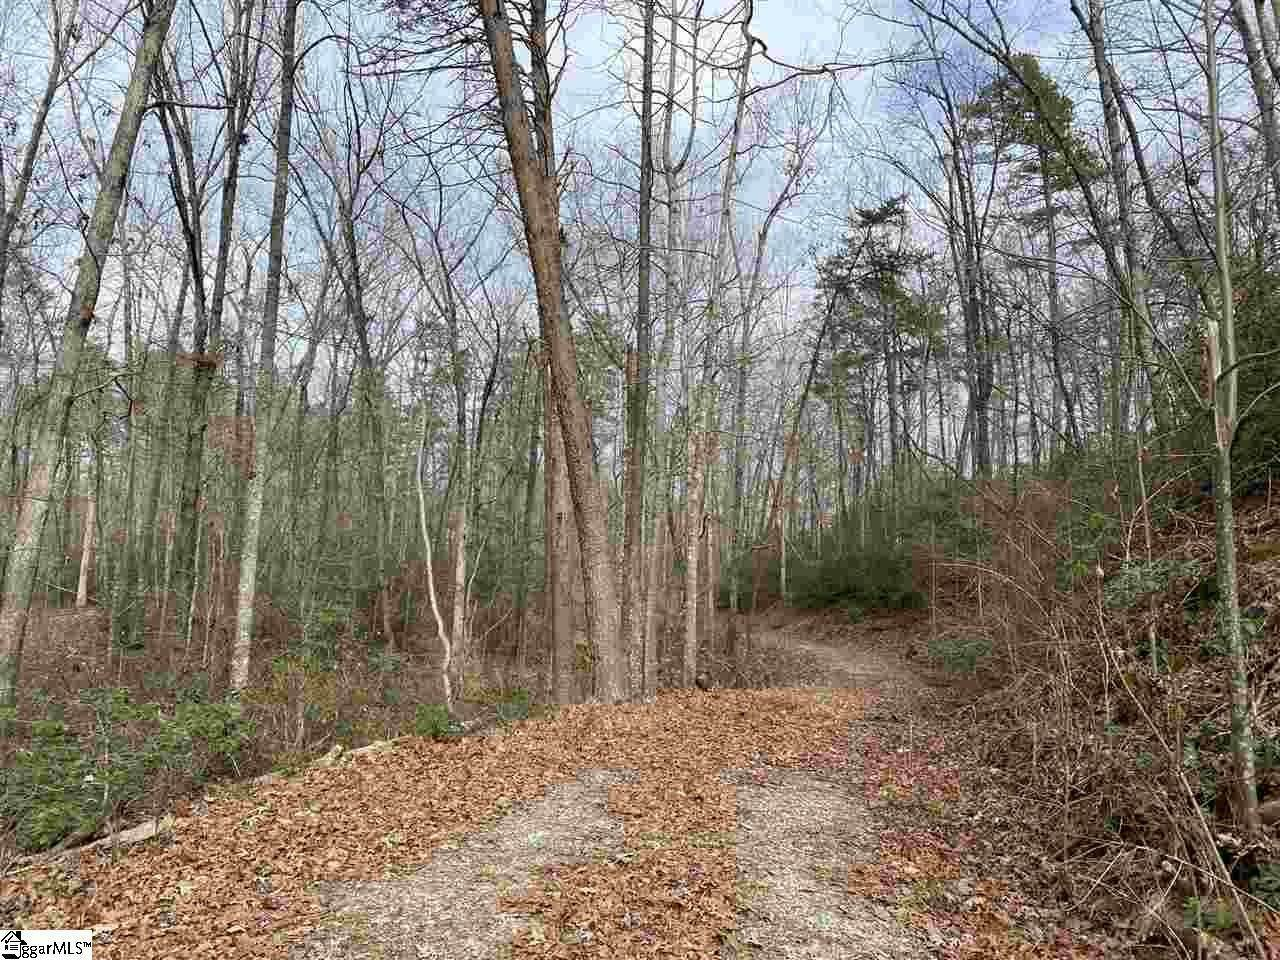 8. Residential Lot for Sale at The Cliffs At Keowee, Sunset, SC 29685